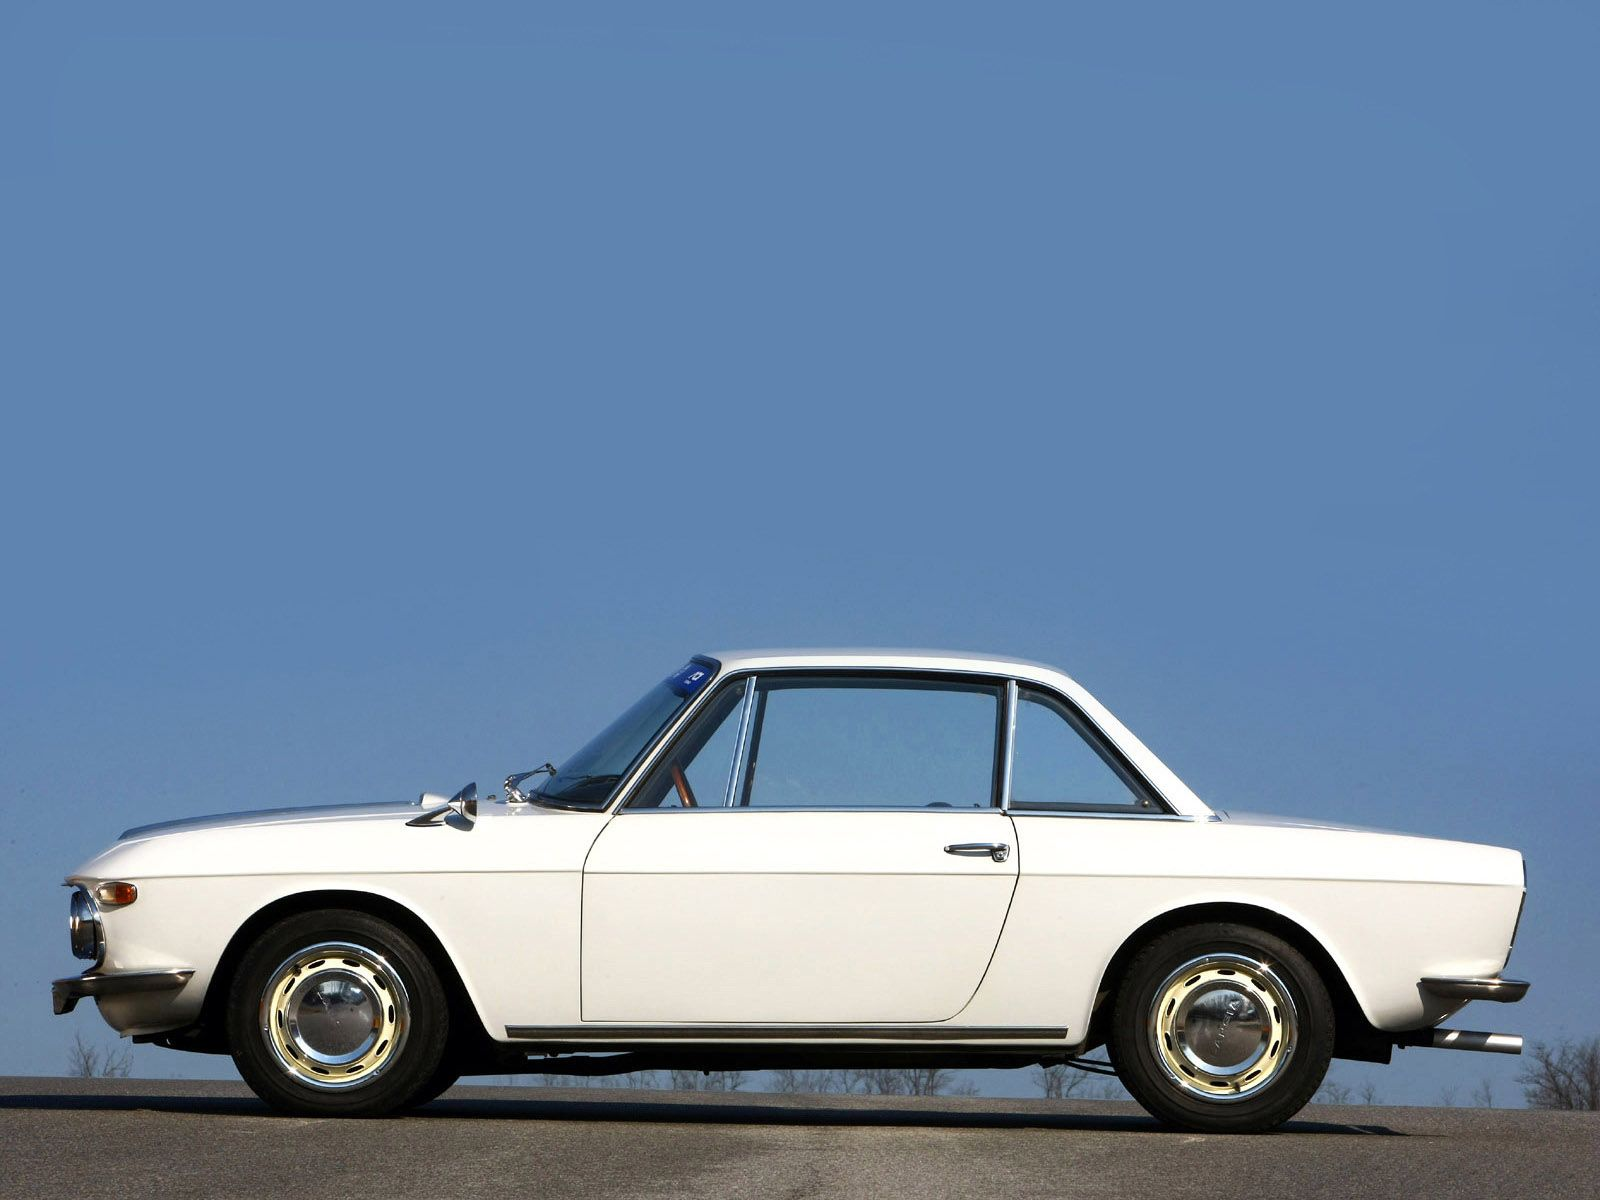 One of the most appreciated Lancia's masterpiece: the Fulvia Coupè